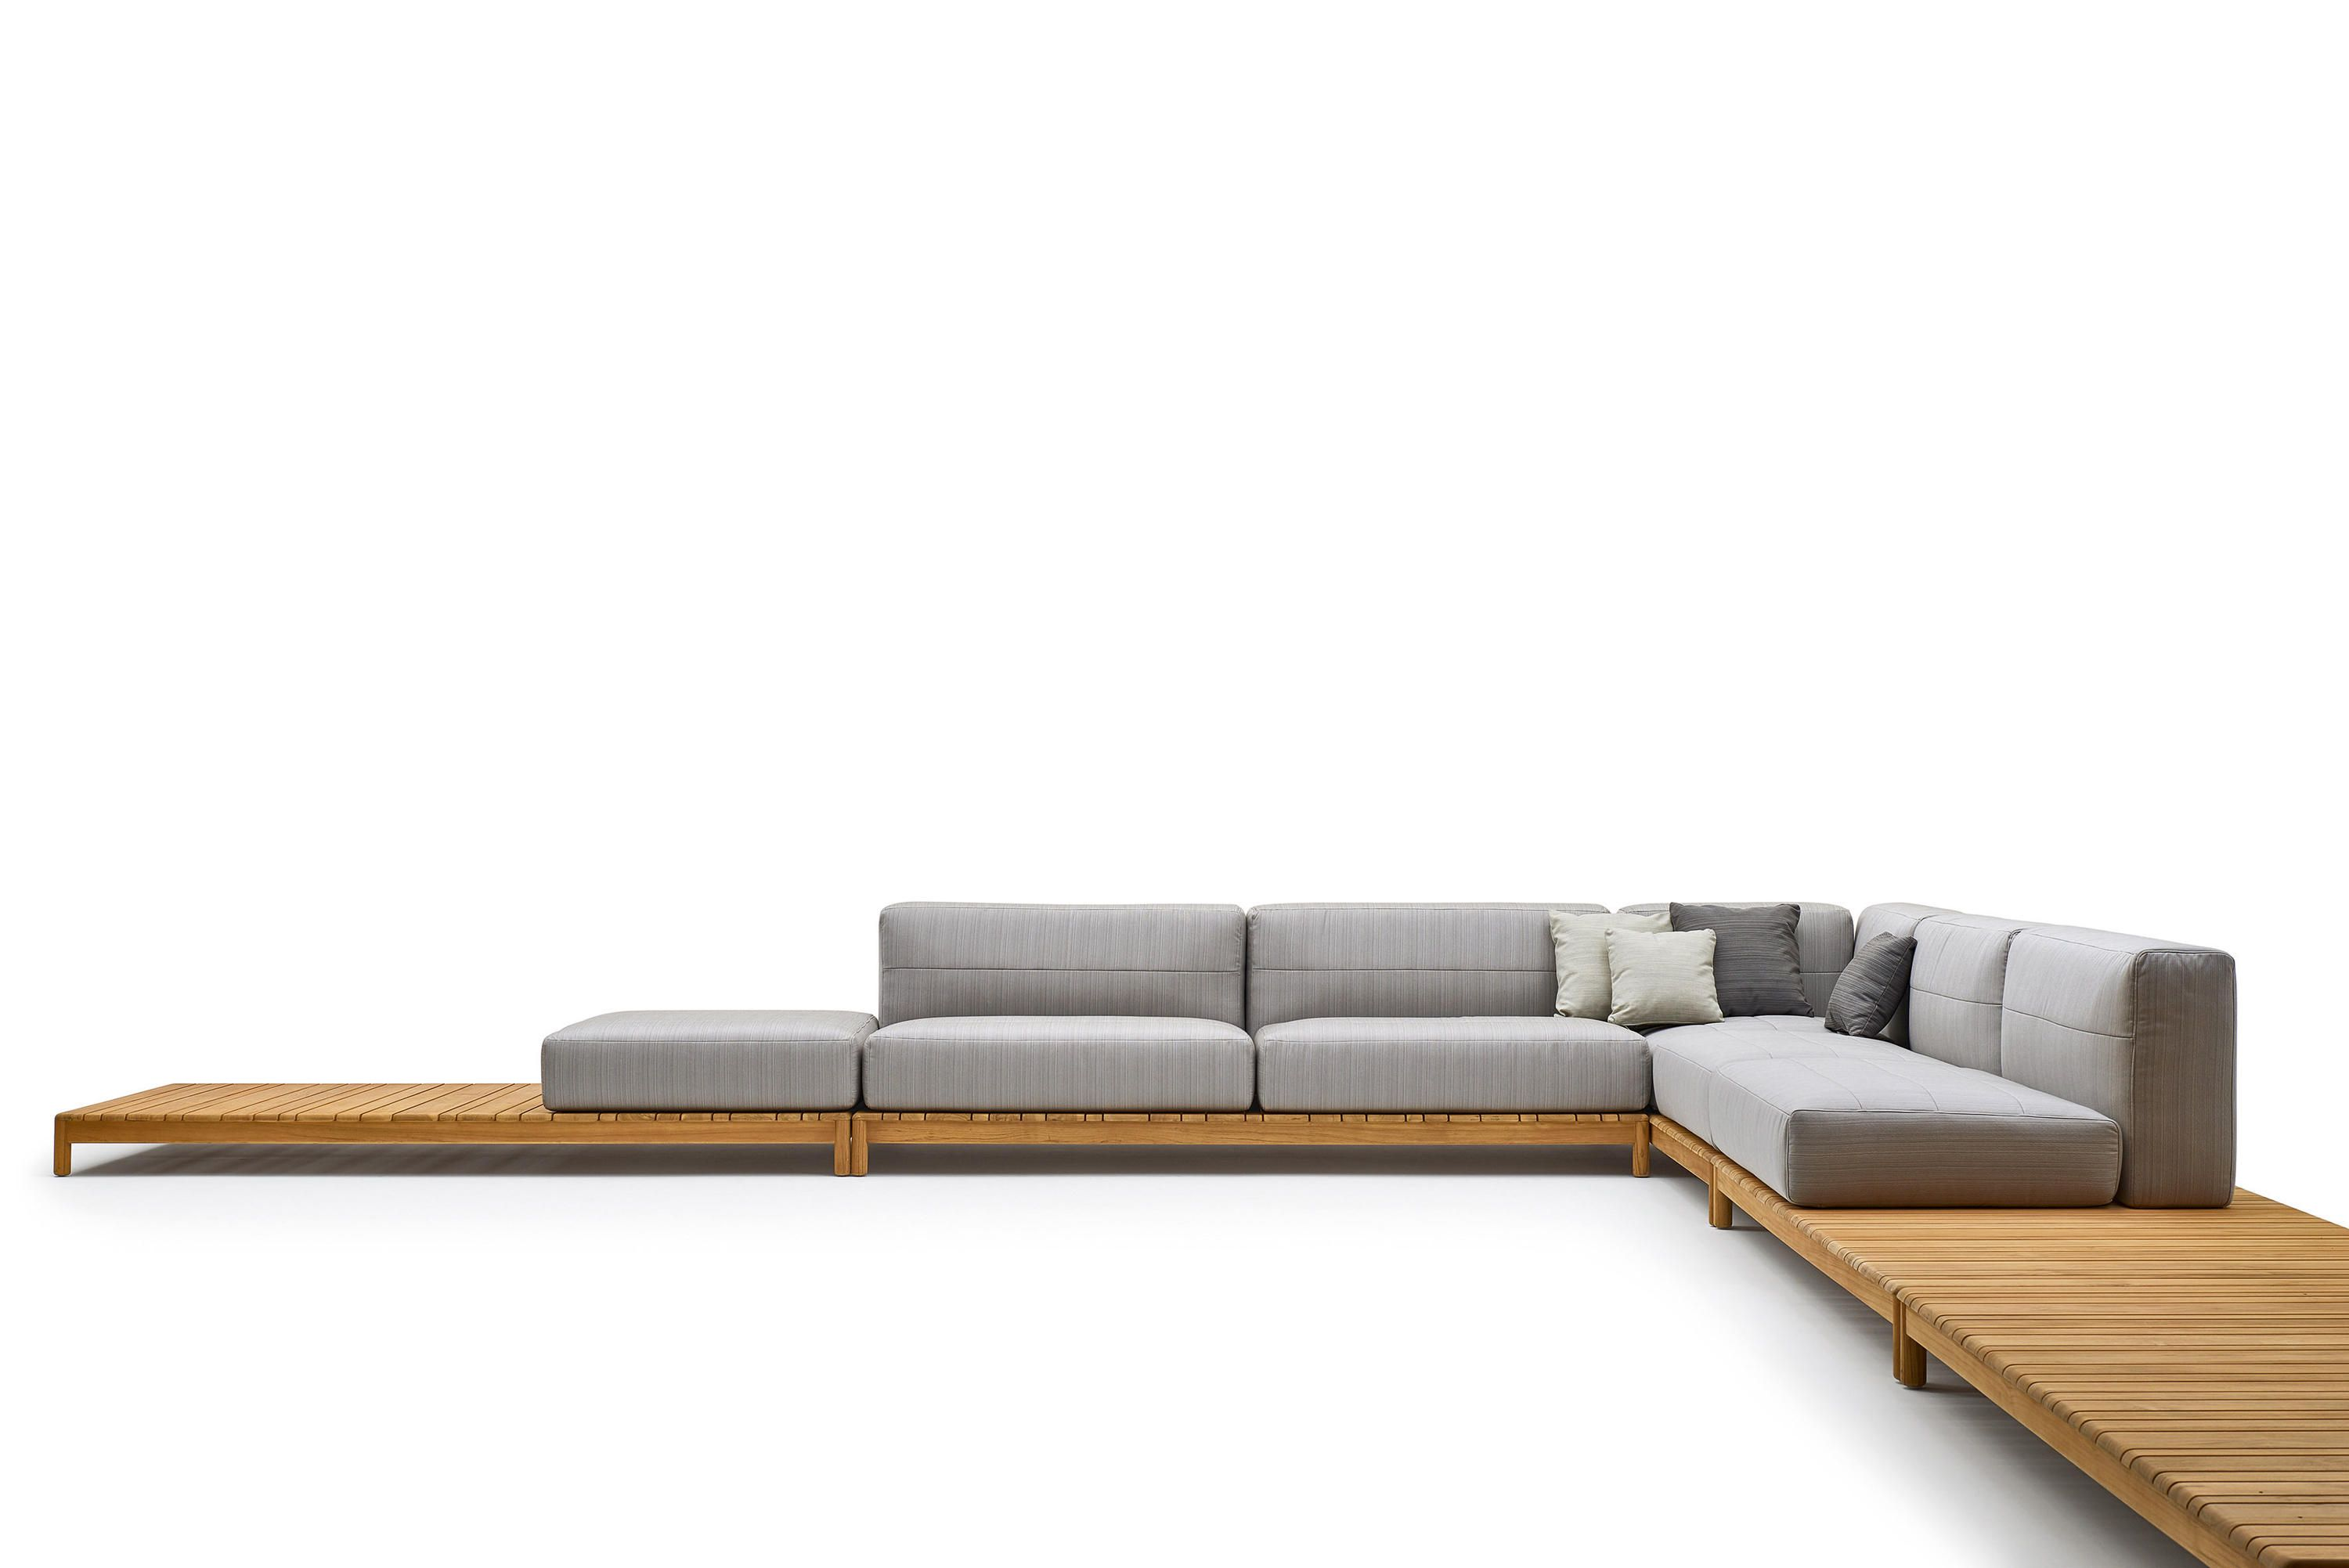 Plus Designer Lounge Sofas From Lapalma All Information High Resolution Images Cads Catalogues Contact In Furniture Furniture Design Sofa Furniture